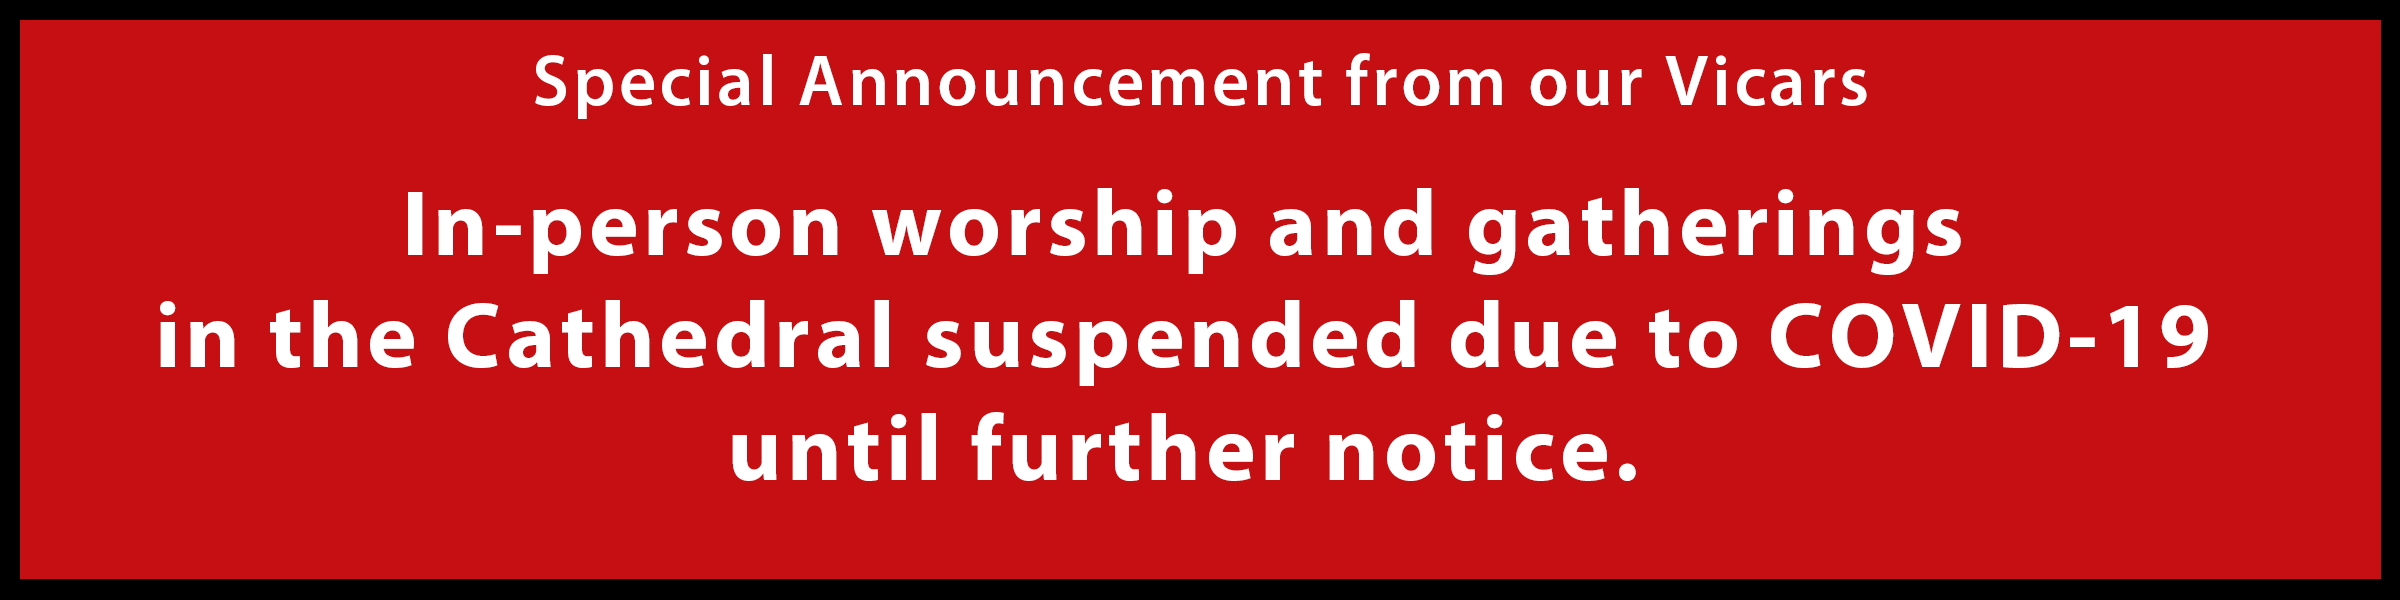 Graphic: Cathedral worship has been suspended once again due to COVID-19.